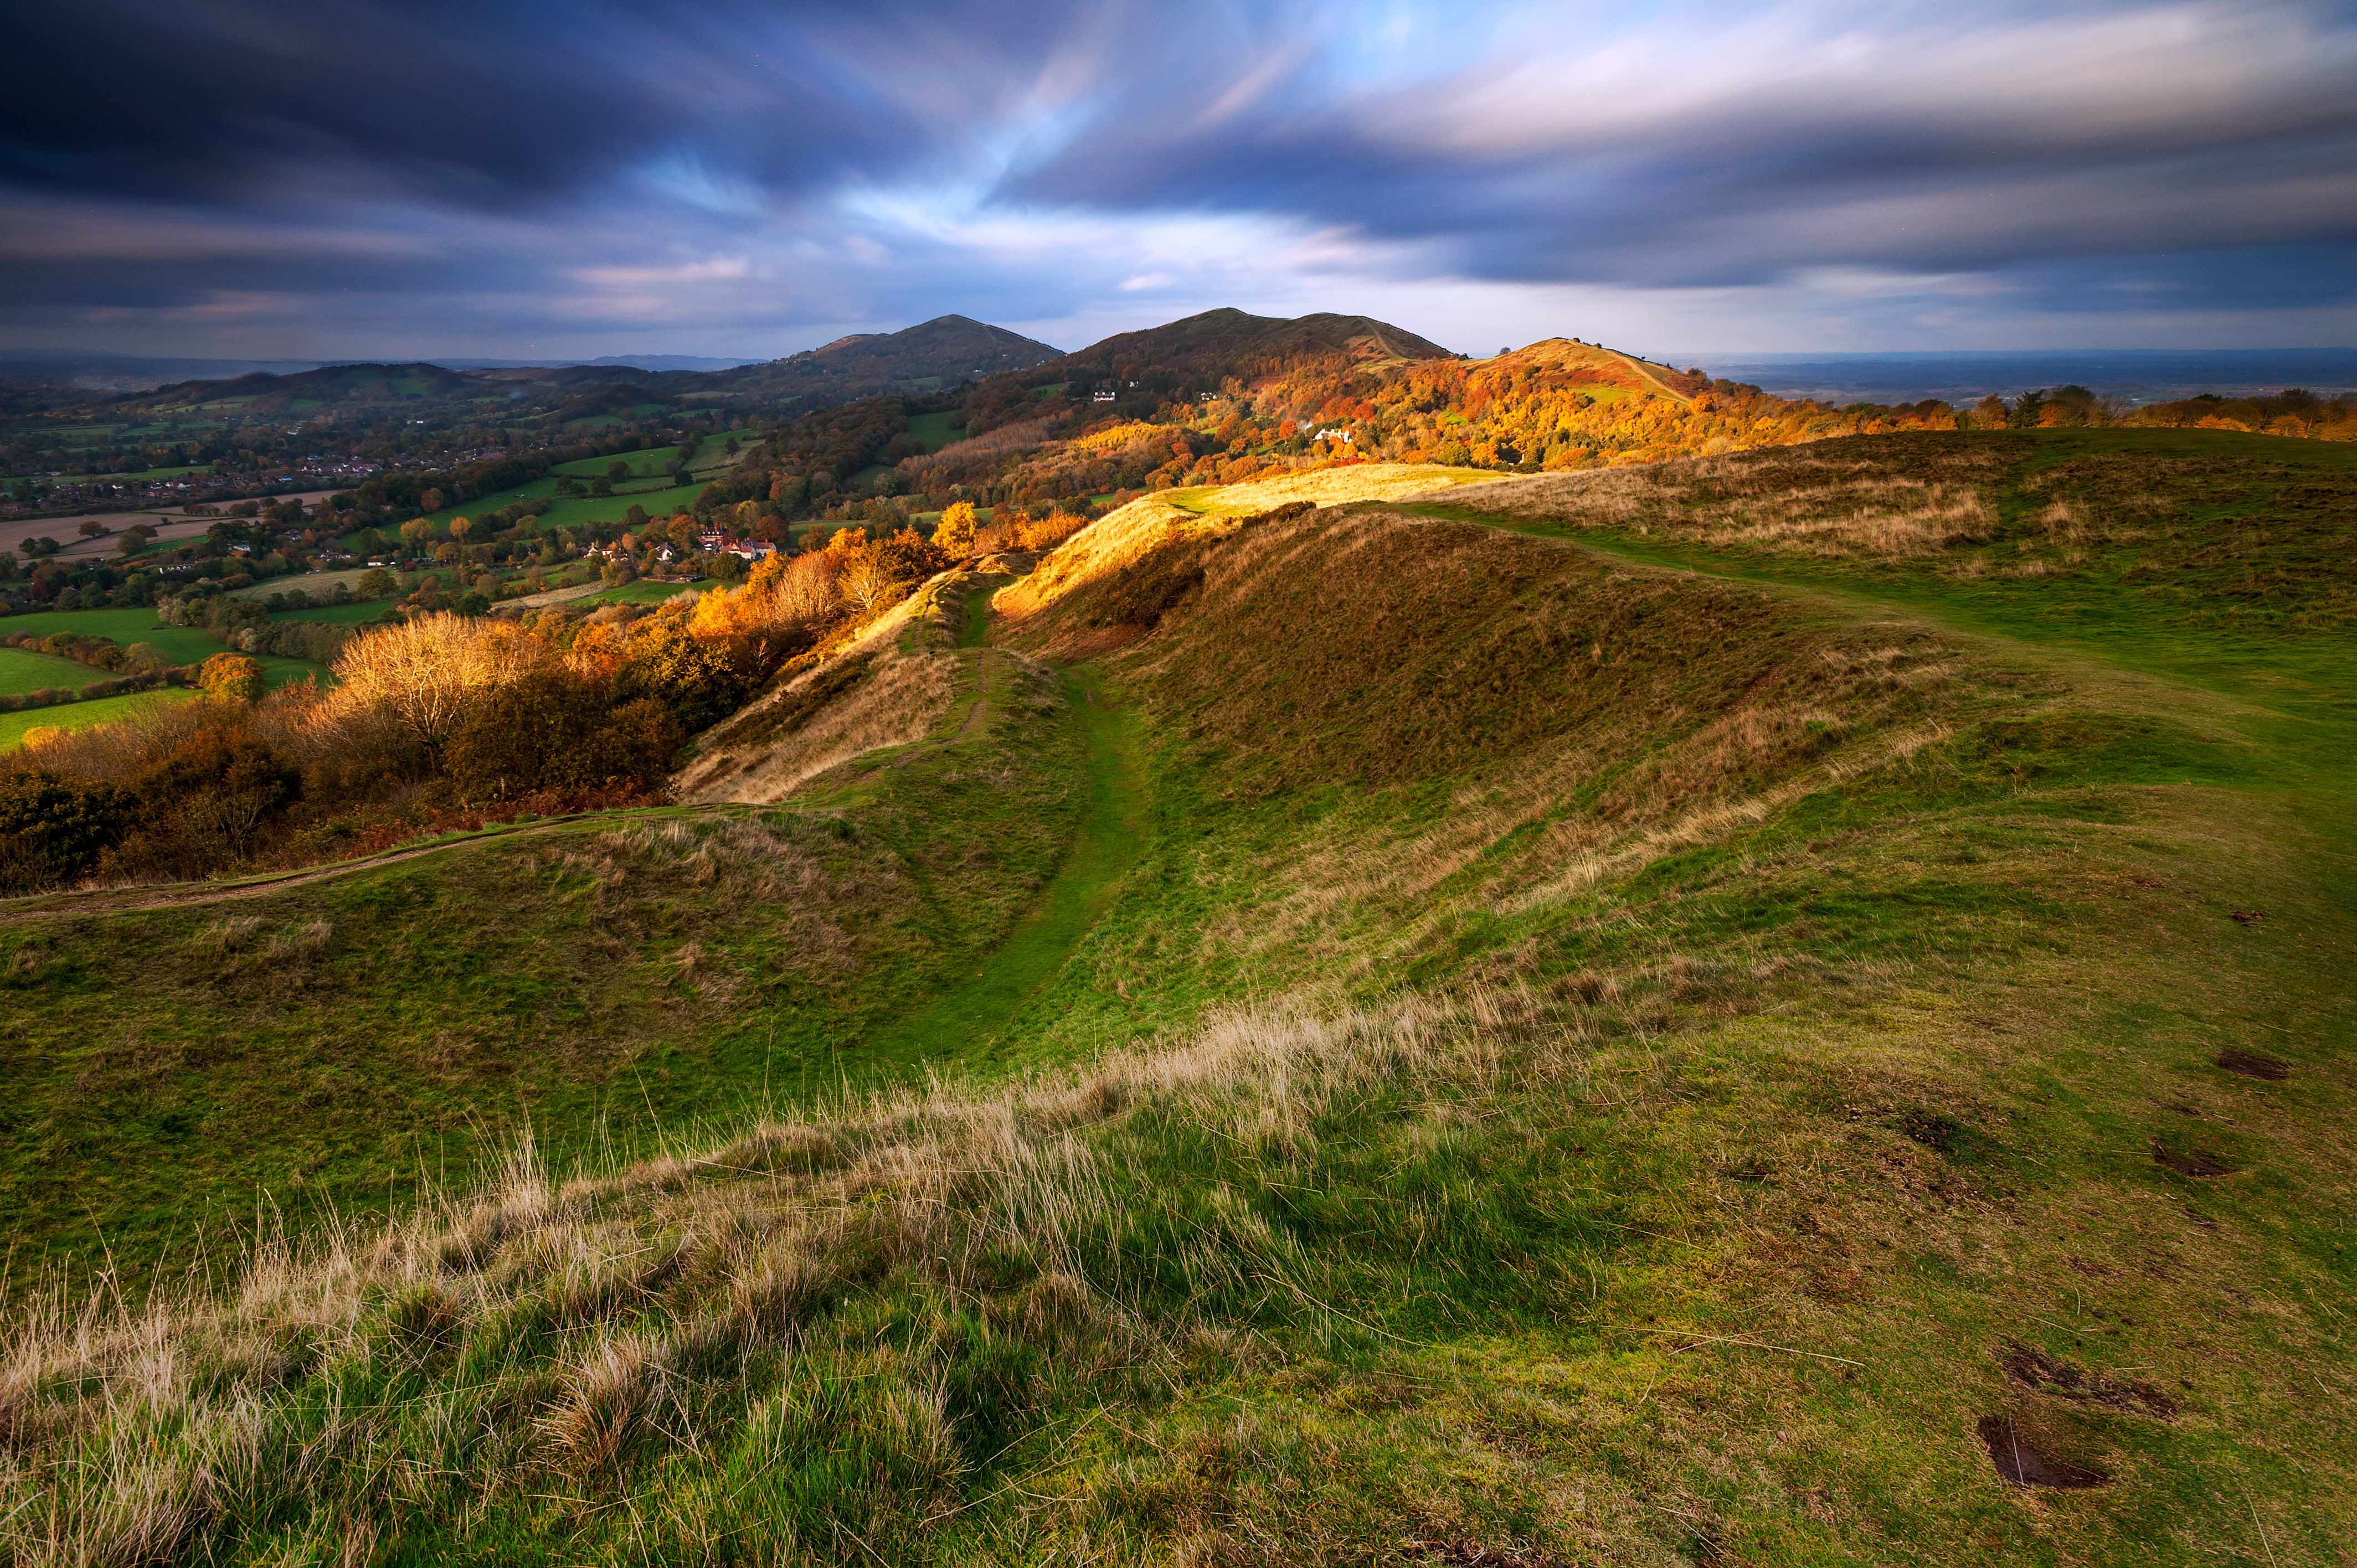 Landscape Photography Worcestershire And The Surrounding Areas